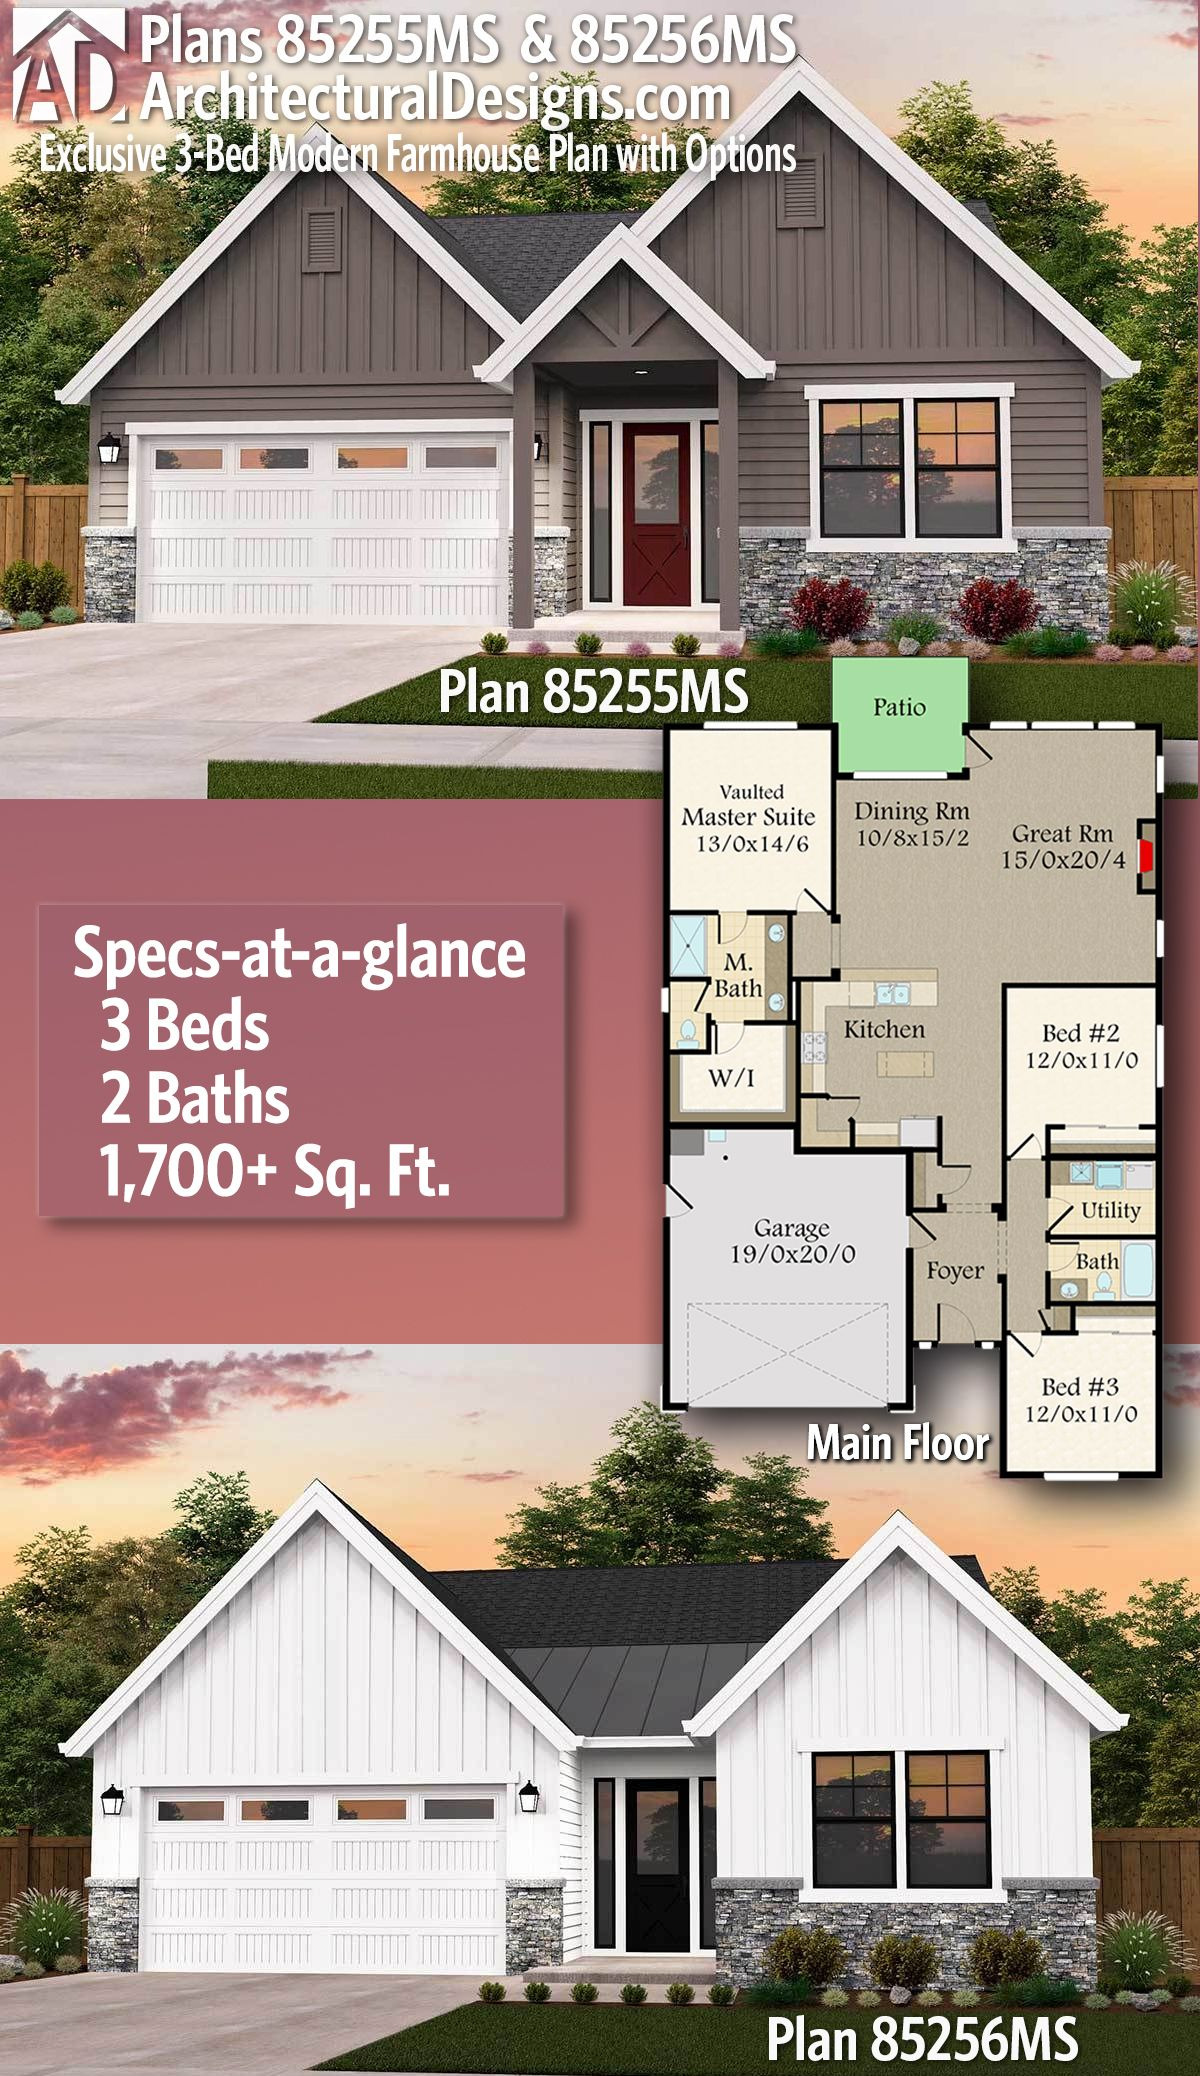 Affordable House Plans to Build Awesome Architectural Designs Exclusive Affordable Farmhouse Plan